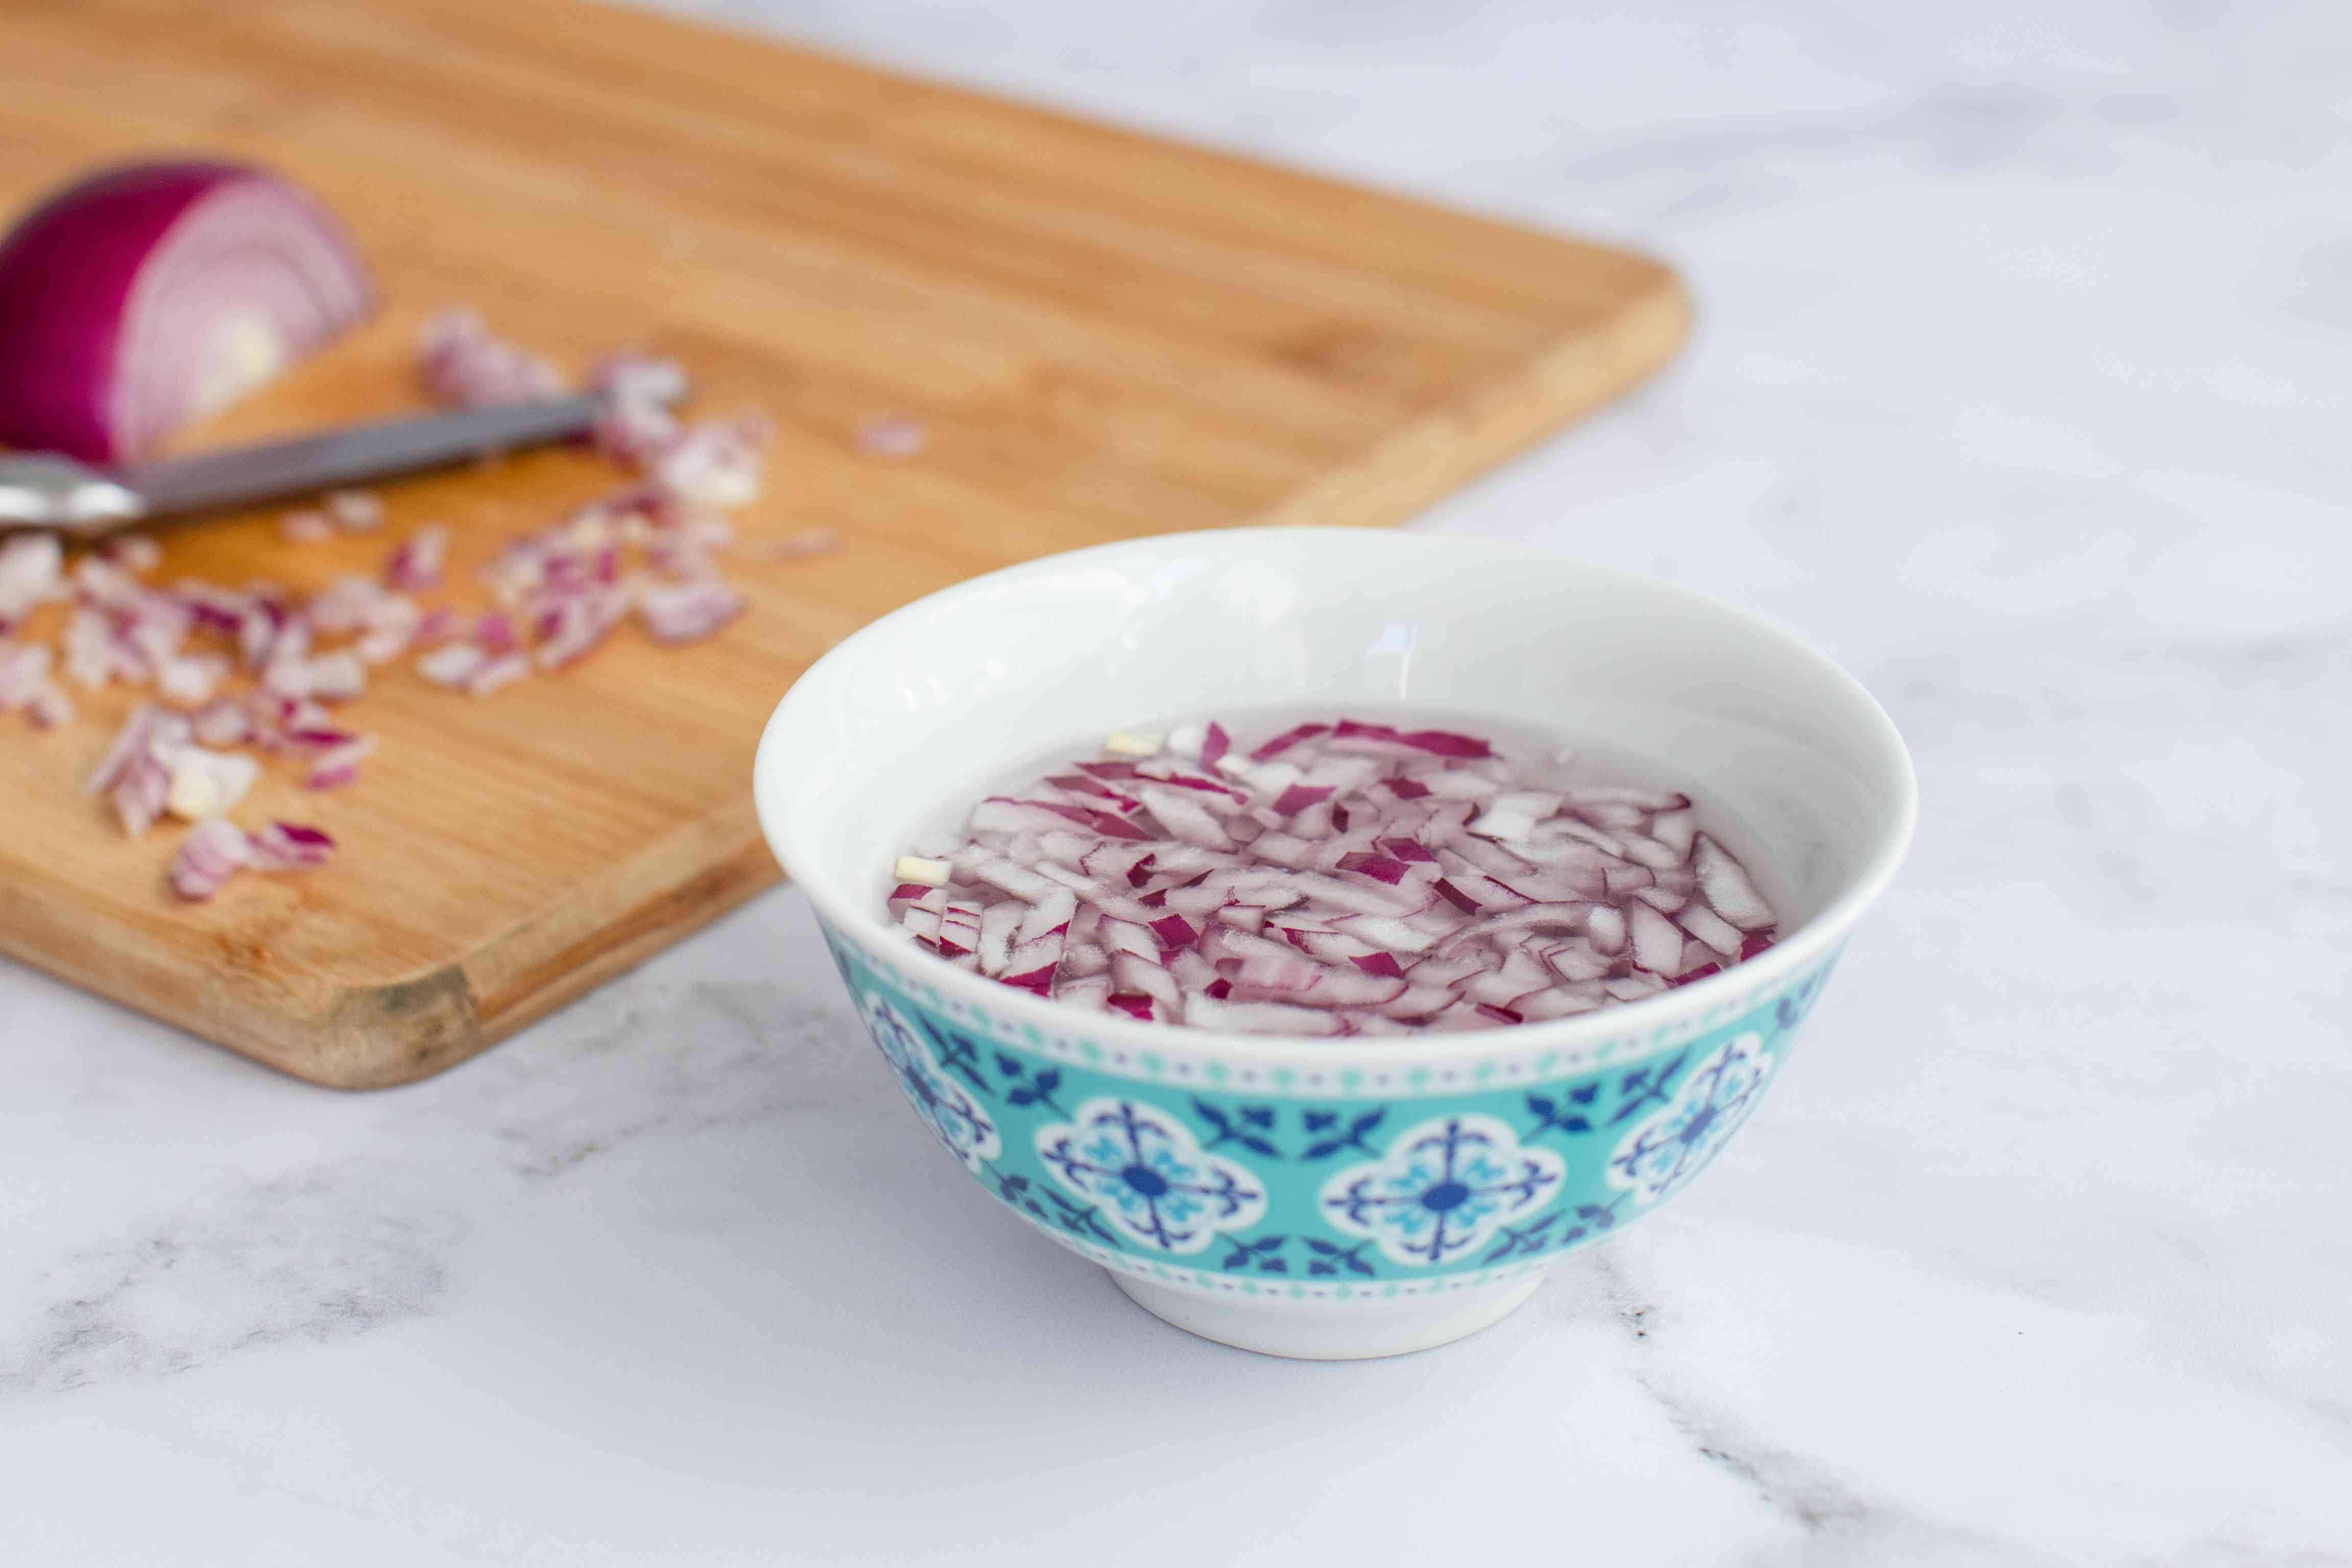 Chopped red onion in a bowl of liquid to make a green bean salad recipe.